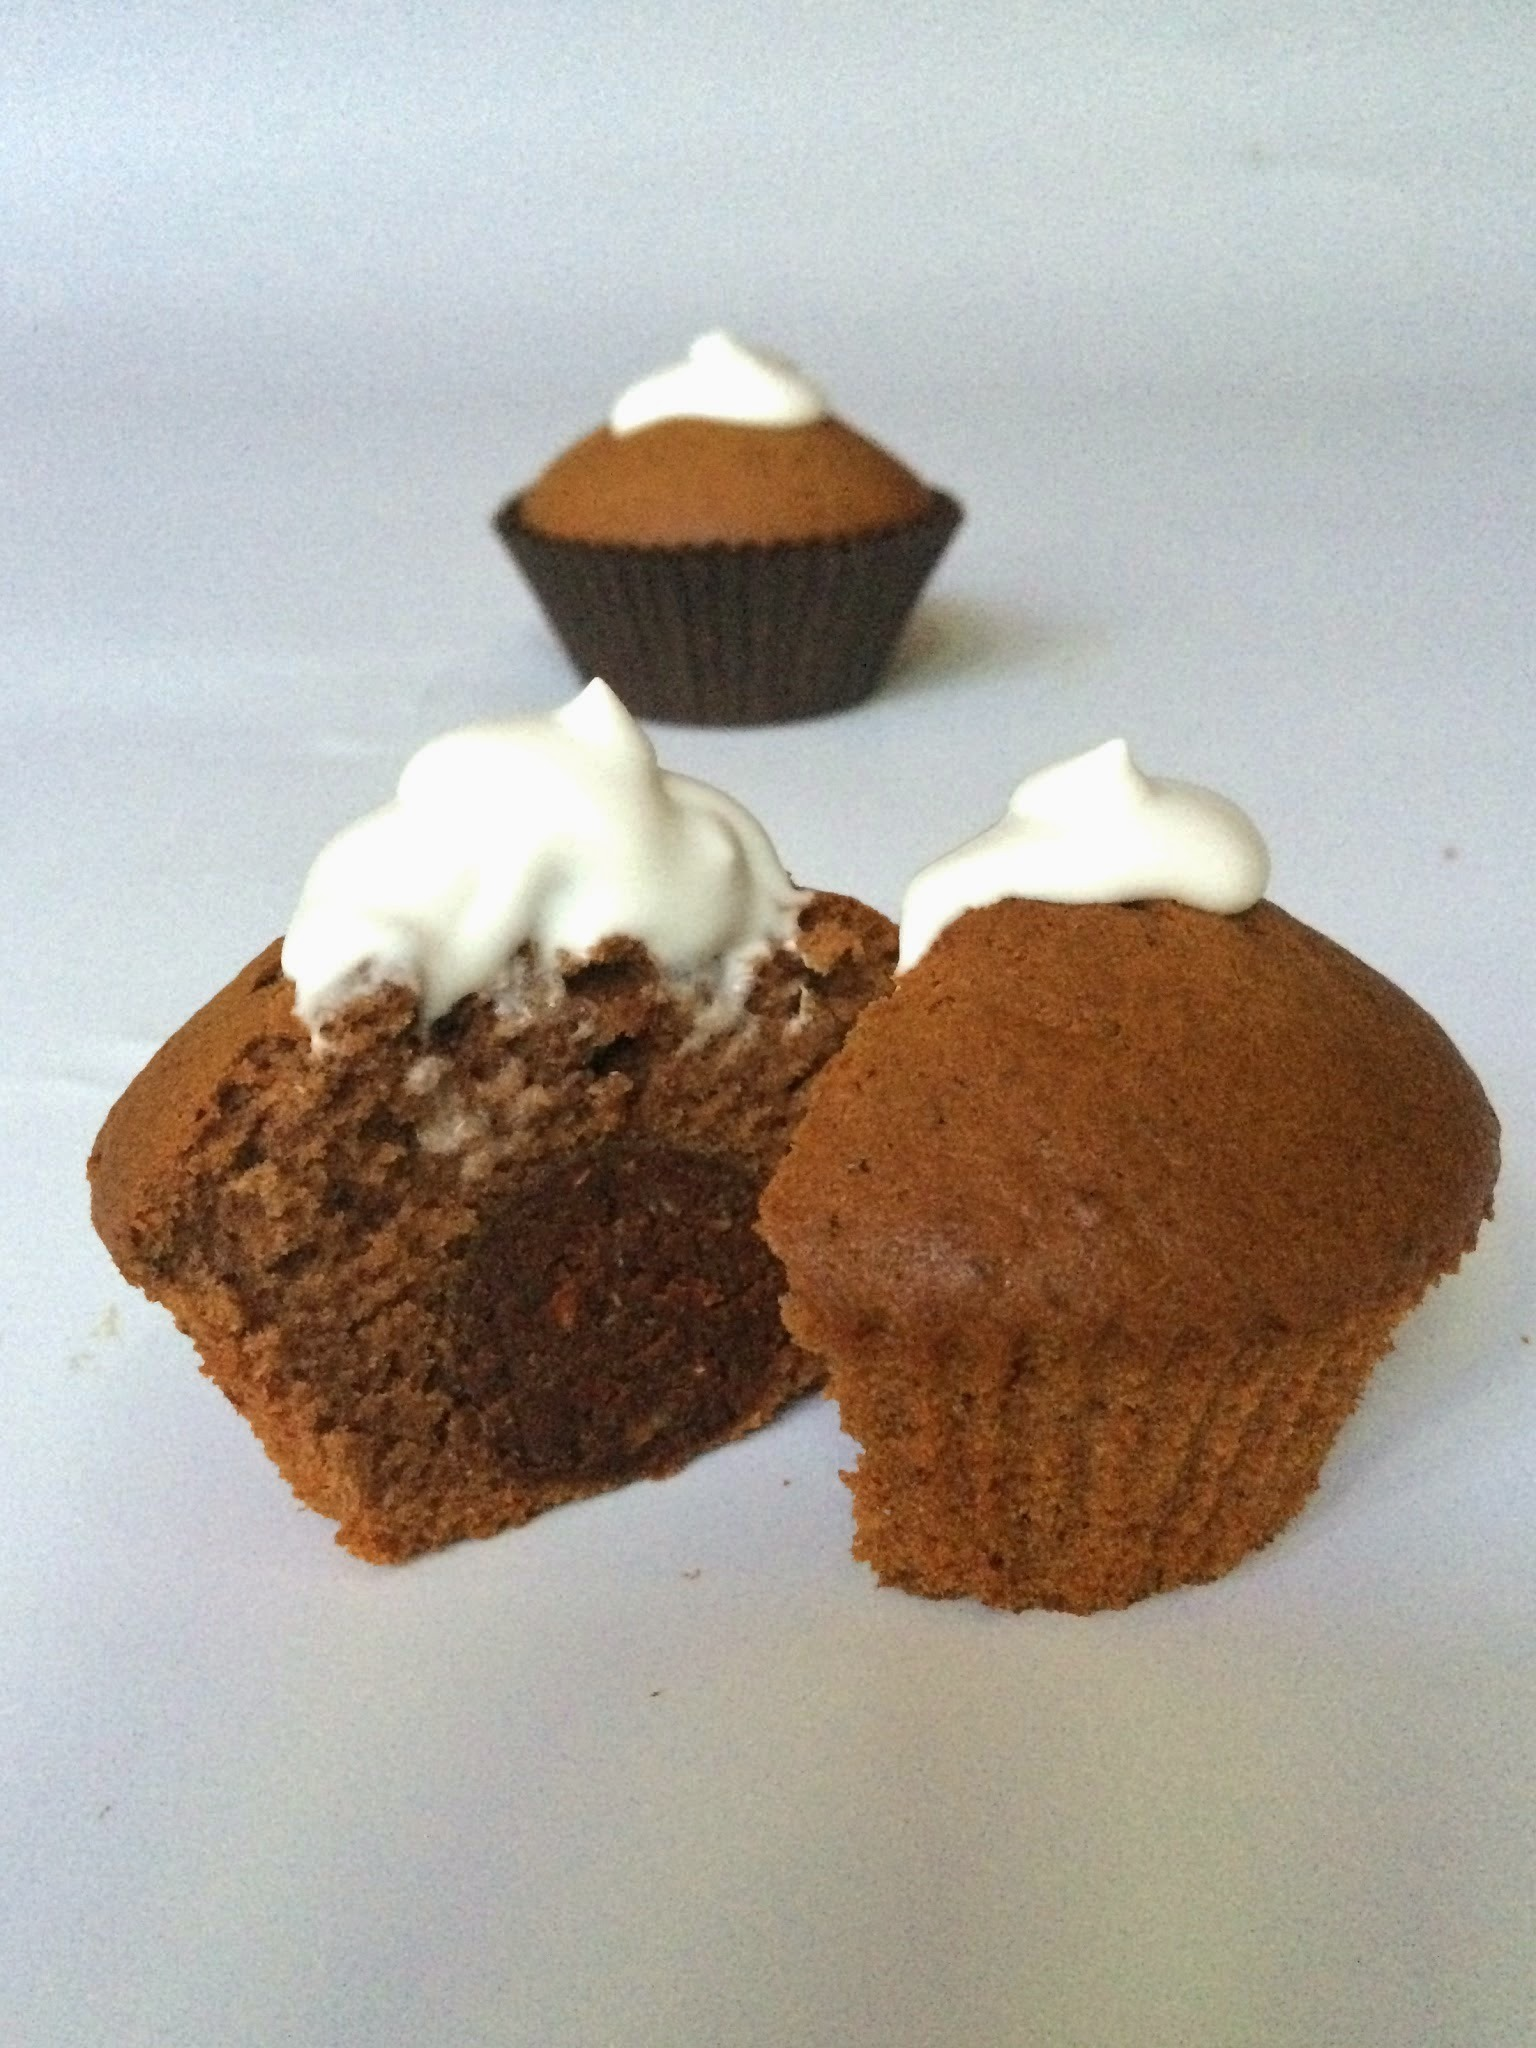 Chocolate and banana cupcakes